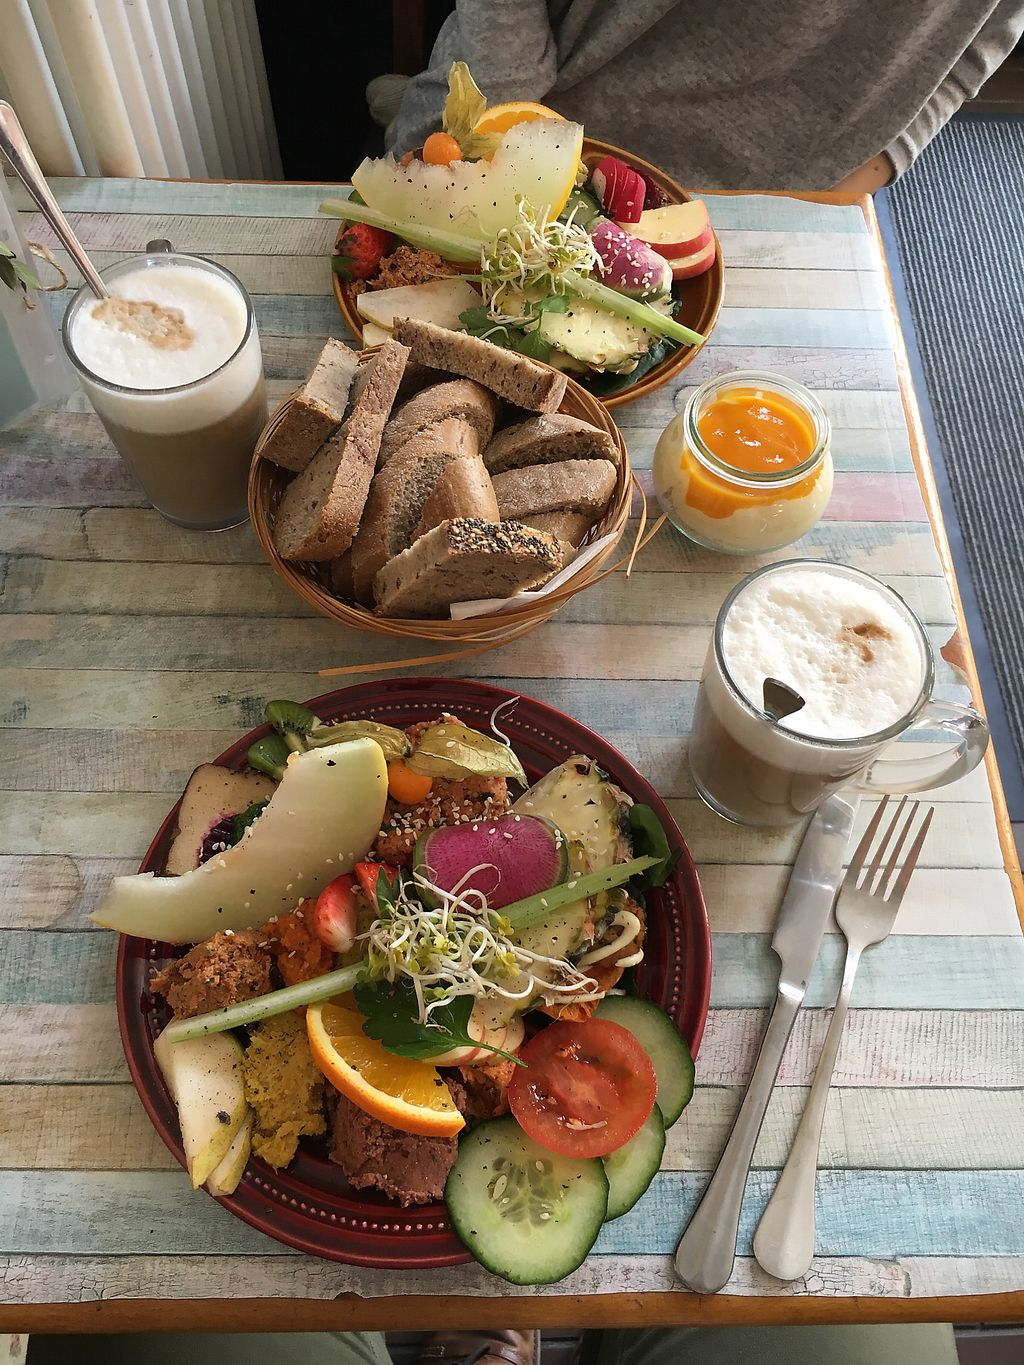 """Photo of Geh Veg  by <a href=""""/members/profile/JouniK%C3%A4rpp%C3%A4"""">JouniKärppä</a> <br/>Big and small breakfast plates. Lattes <br/> February 25, 2018  - <a href='/contact/abuse/image/54502/363717'>Report</a>"""